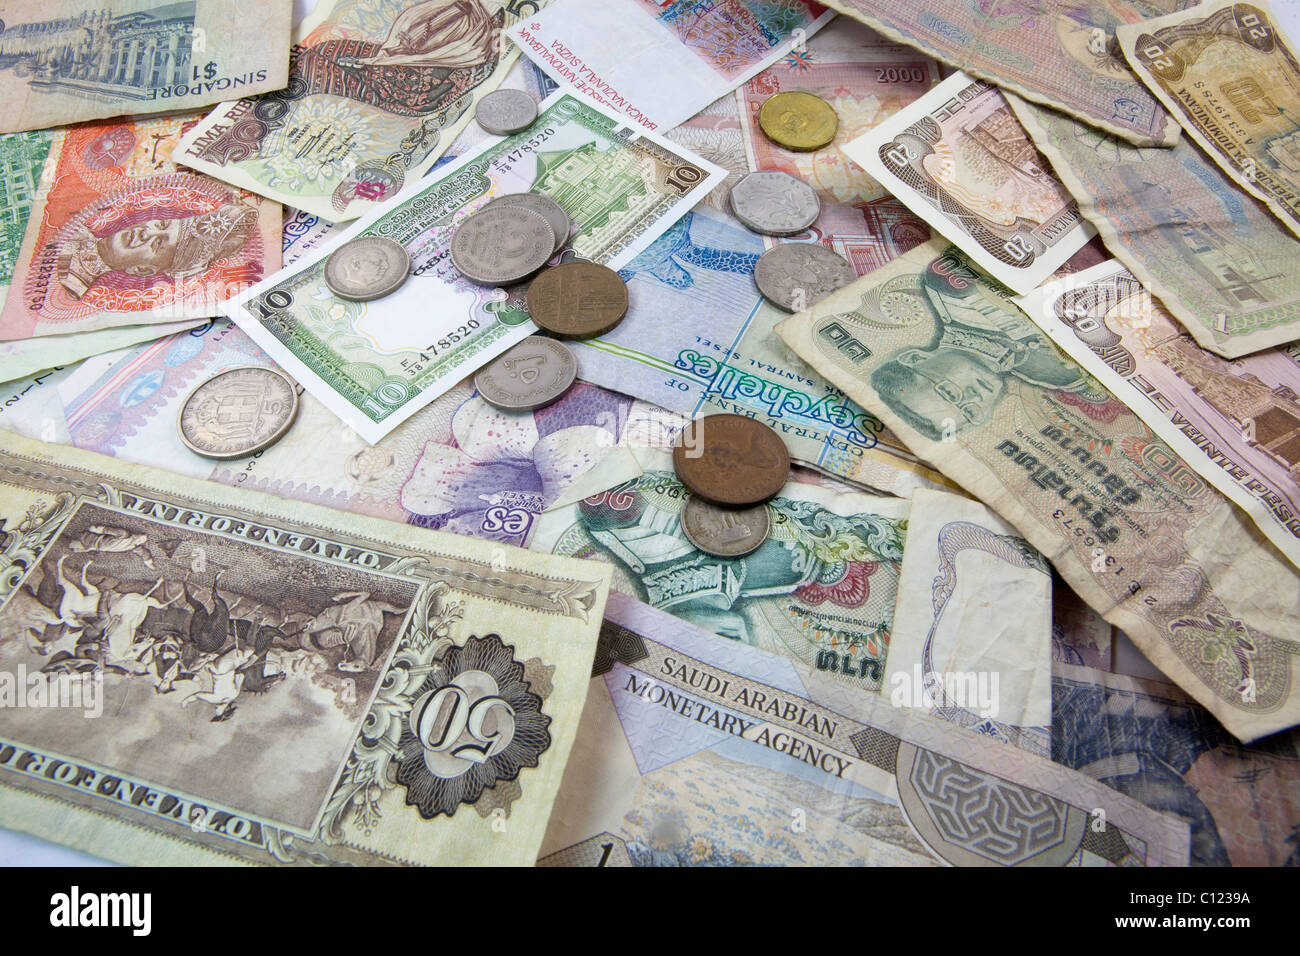 Banknotes and coins from different currencies - Stock Image